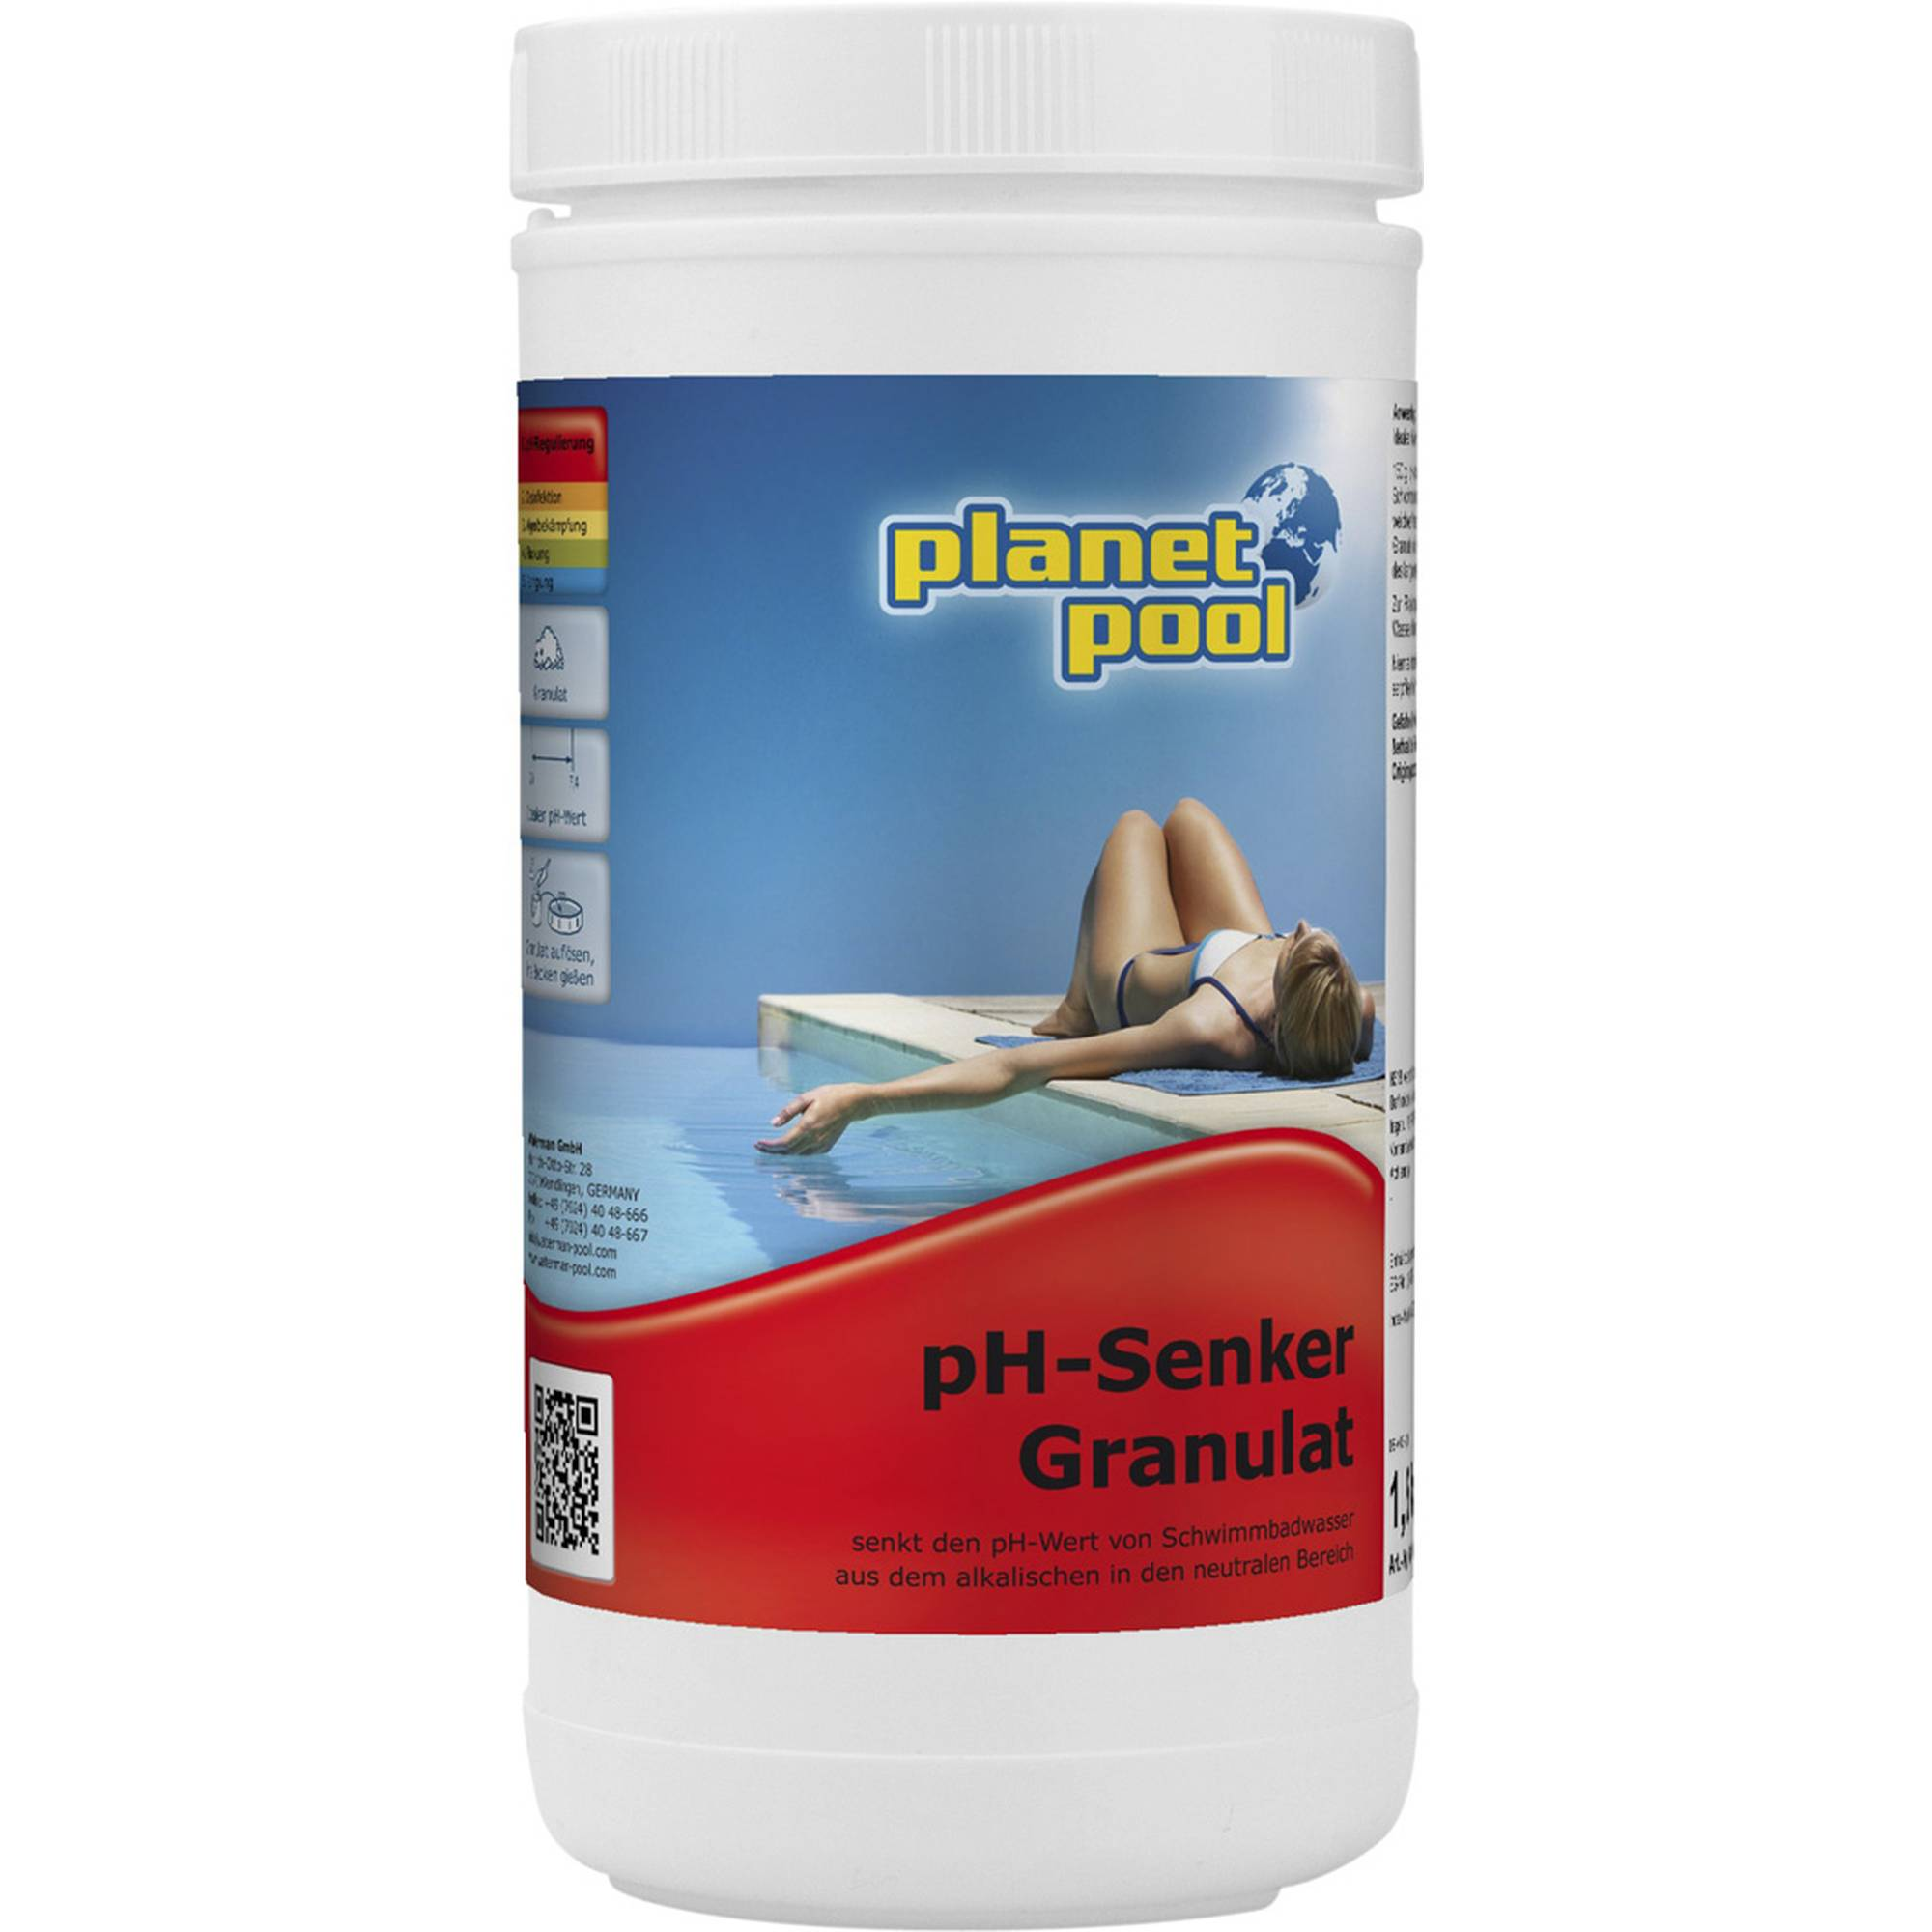 PLANET POOL pH-Senker Granulat 1,5 kg